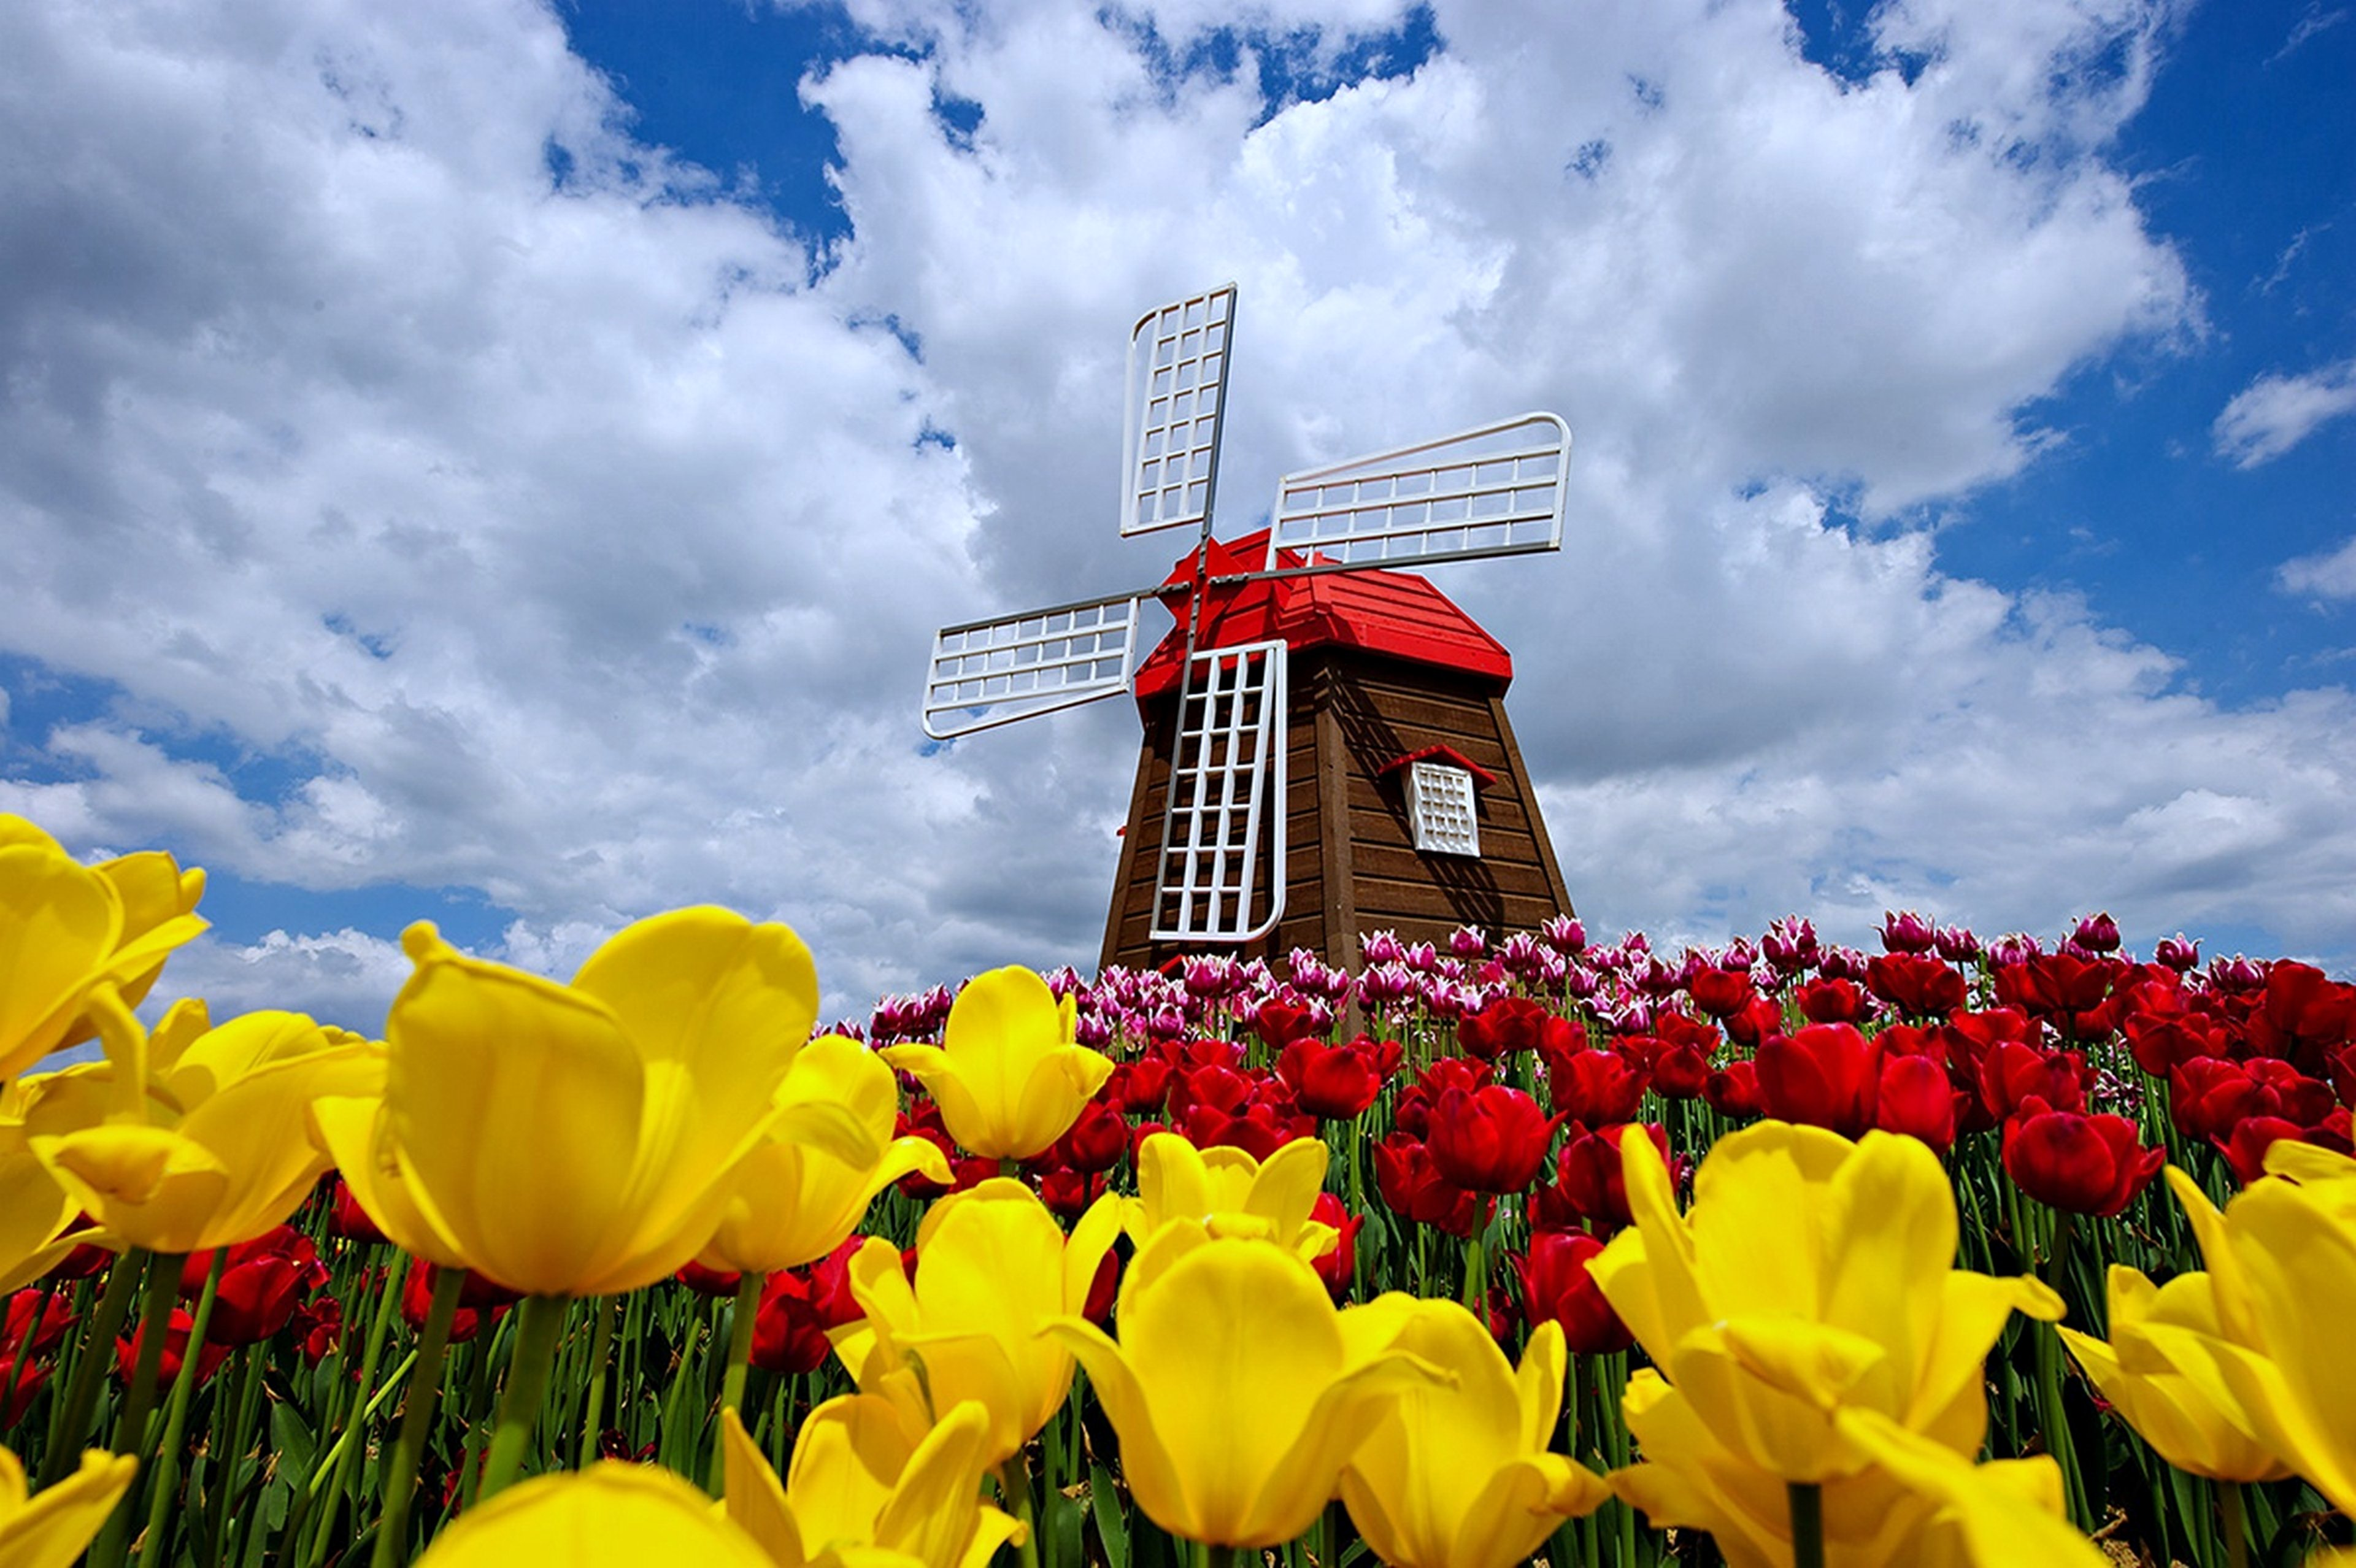 Nature windmill sky clouds spring flowers tulips nature landscaps roses red yellow beauty further Tatum Dagelet Beticht Rowena Uit also Dc1024gallerydc08 additionally P141 likewise 1205 valmet 905 Serie Nr 900636. on dutch html